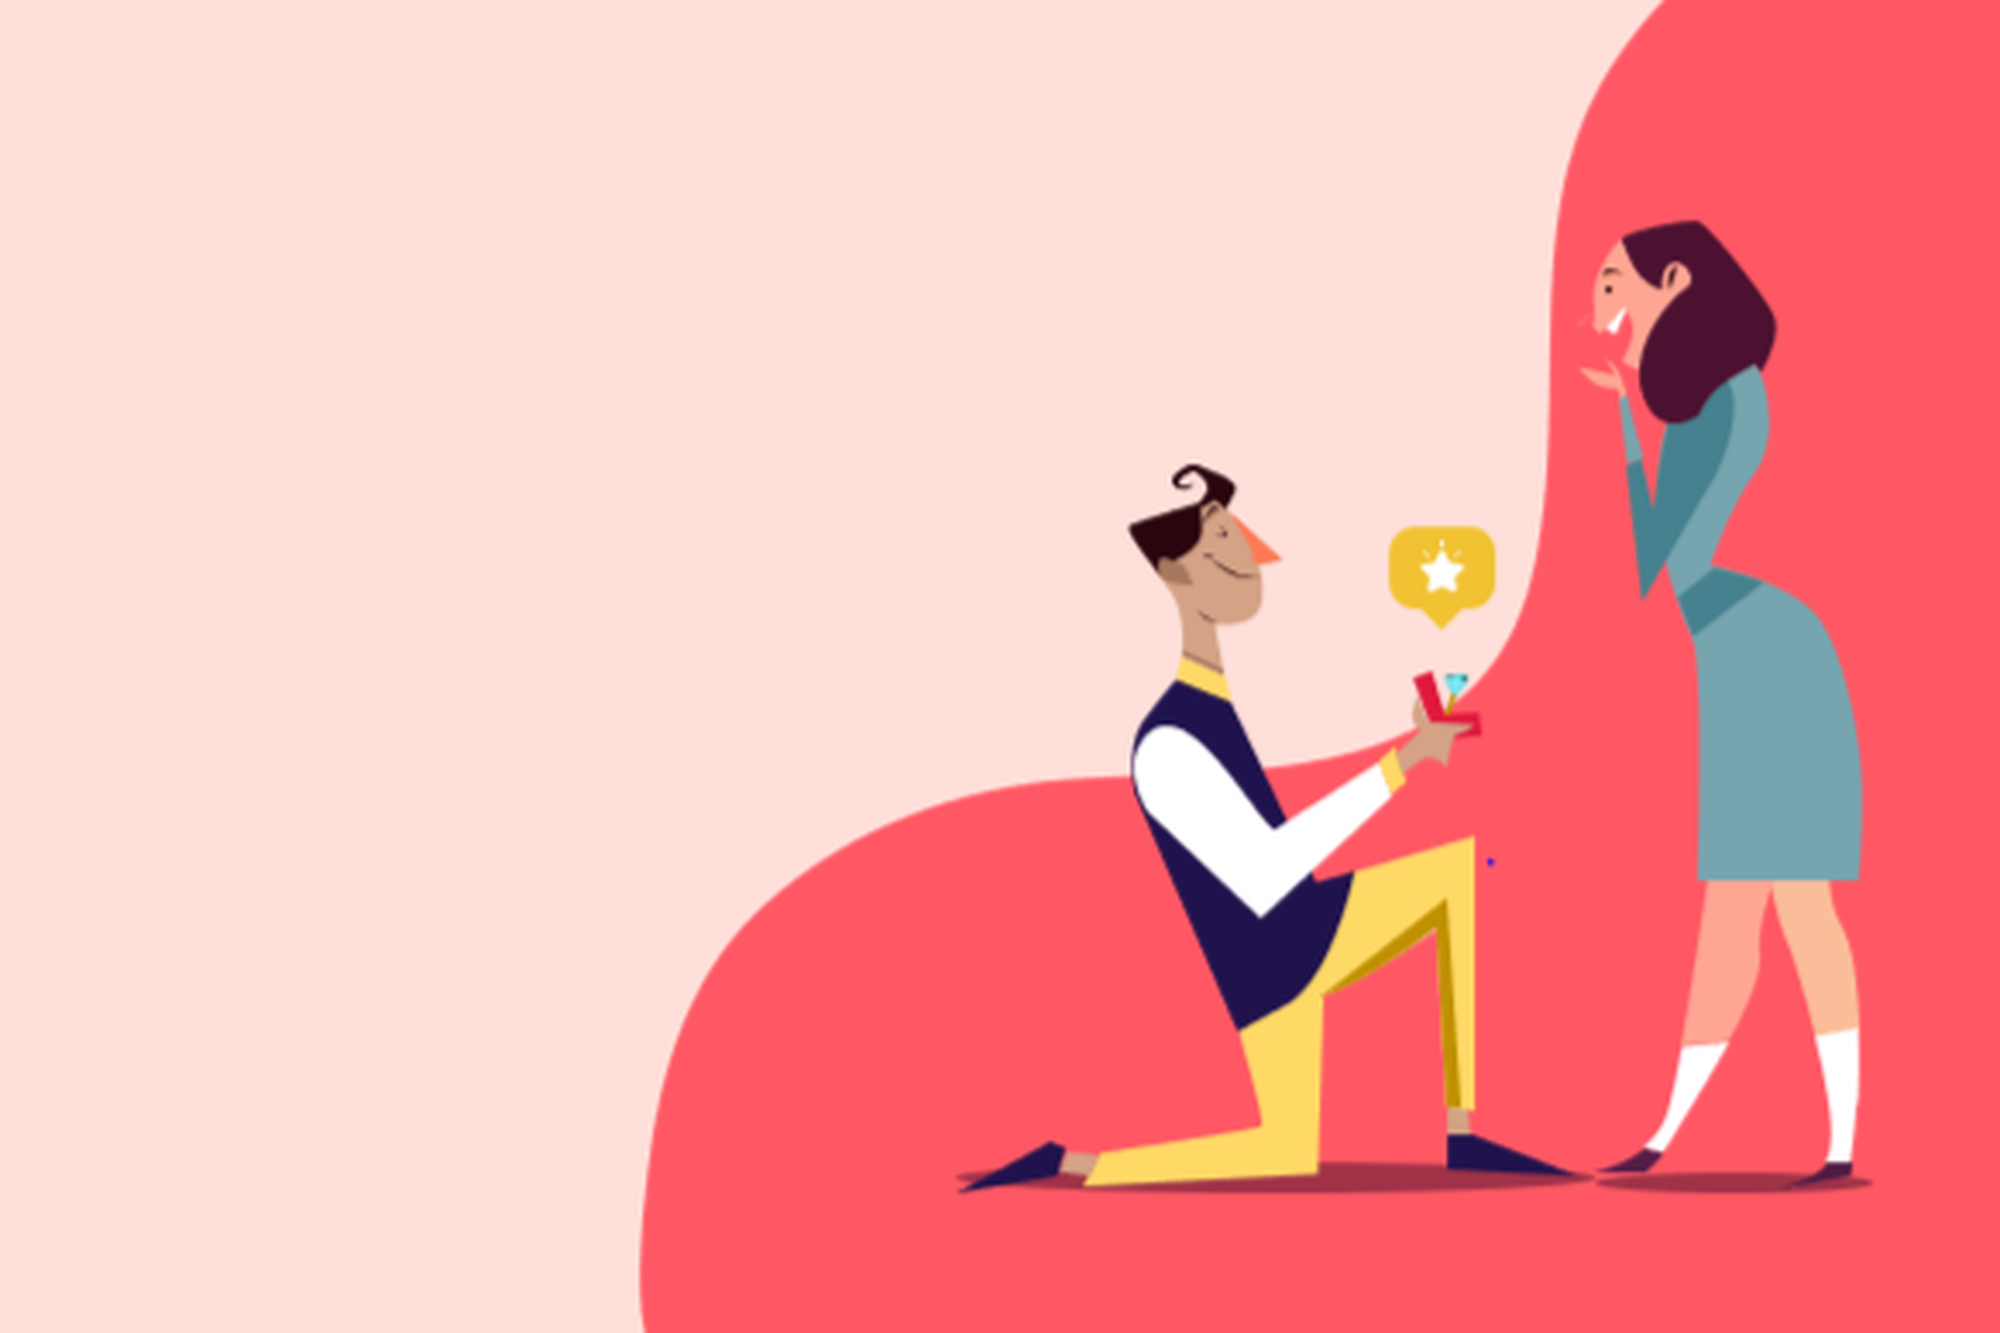 Valentine's day influencer marketing campaign insights